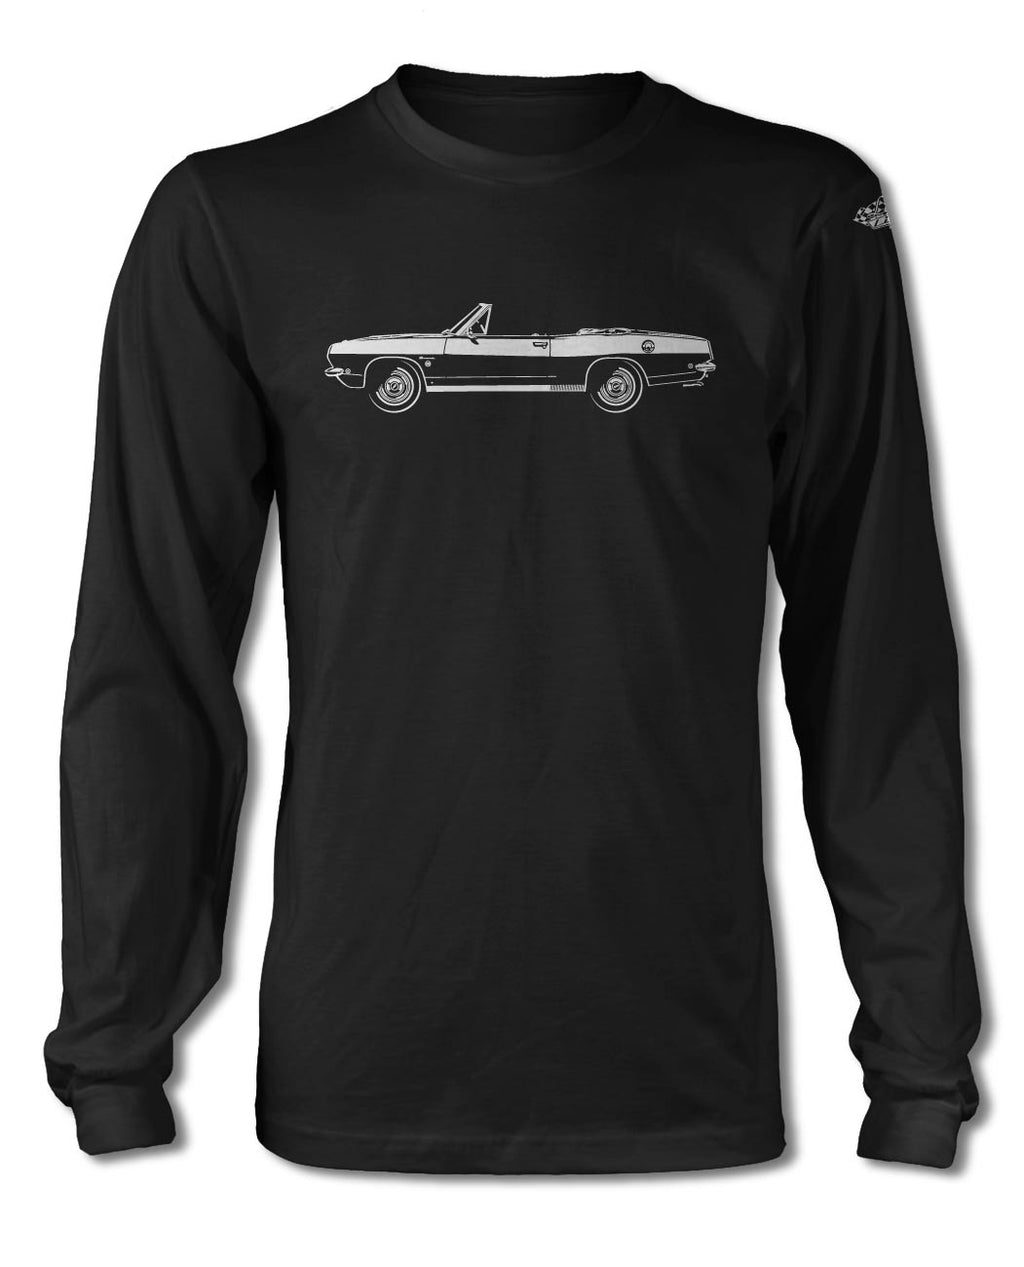 1968 Plymouth Barracuda Convertible T-Shirt - Long Sleeves - Side View